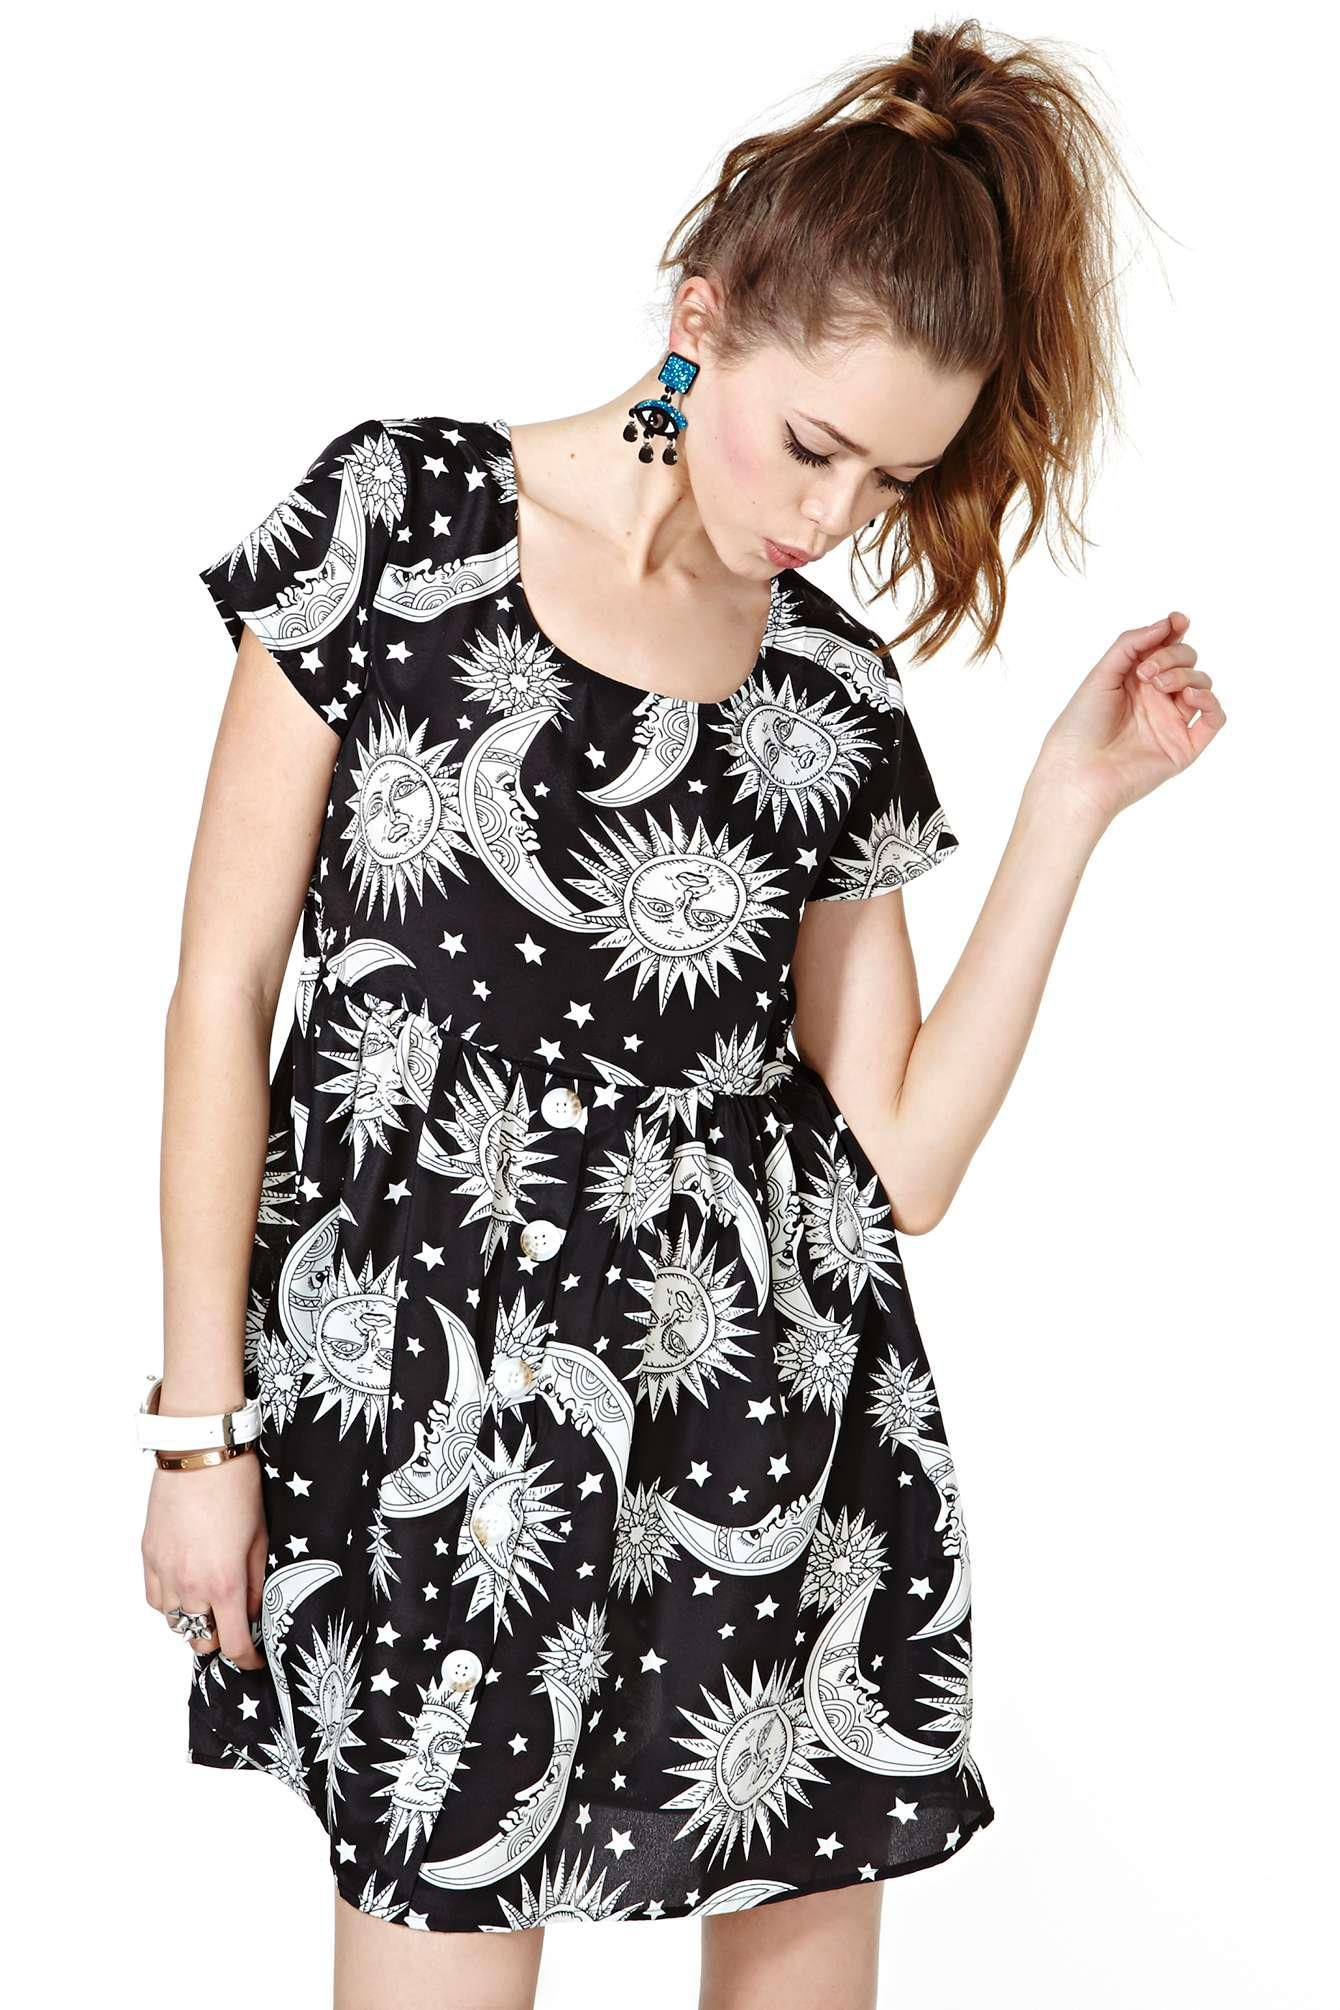 The cosmos came together to create one of our favorite summer dresses!  The Sun and Stars Dress f...